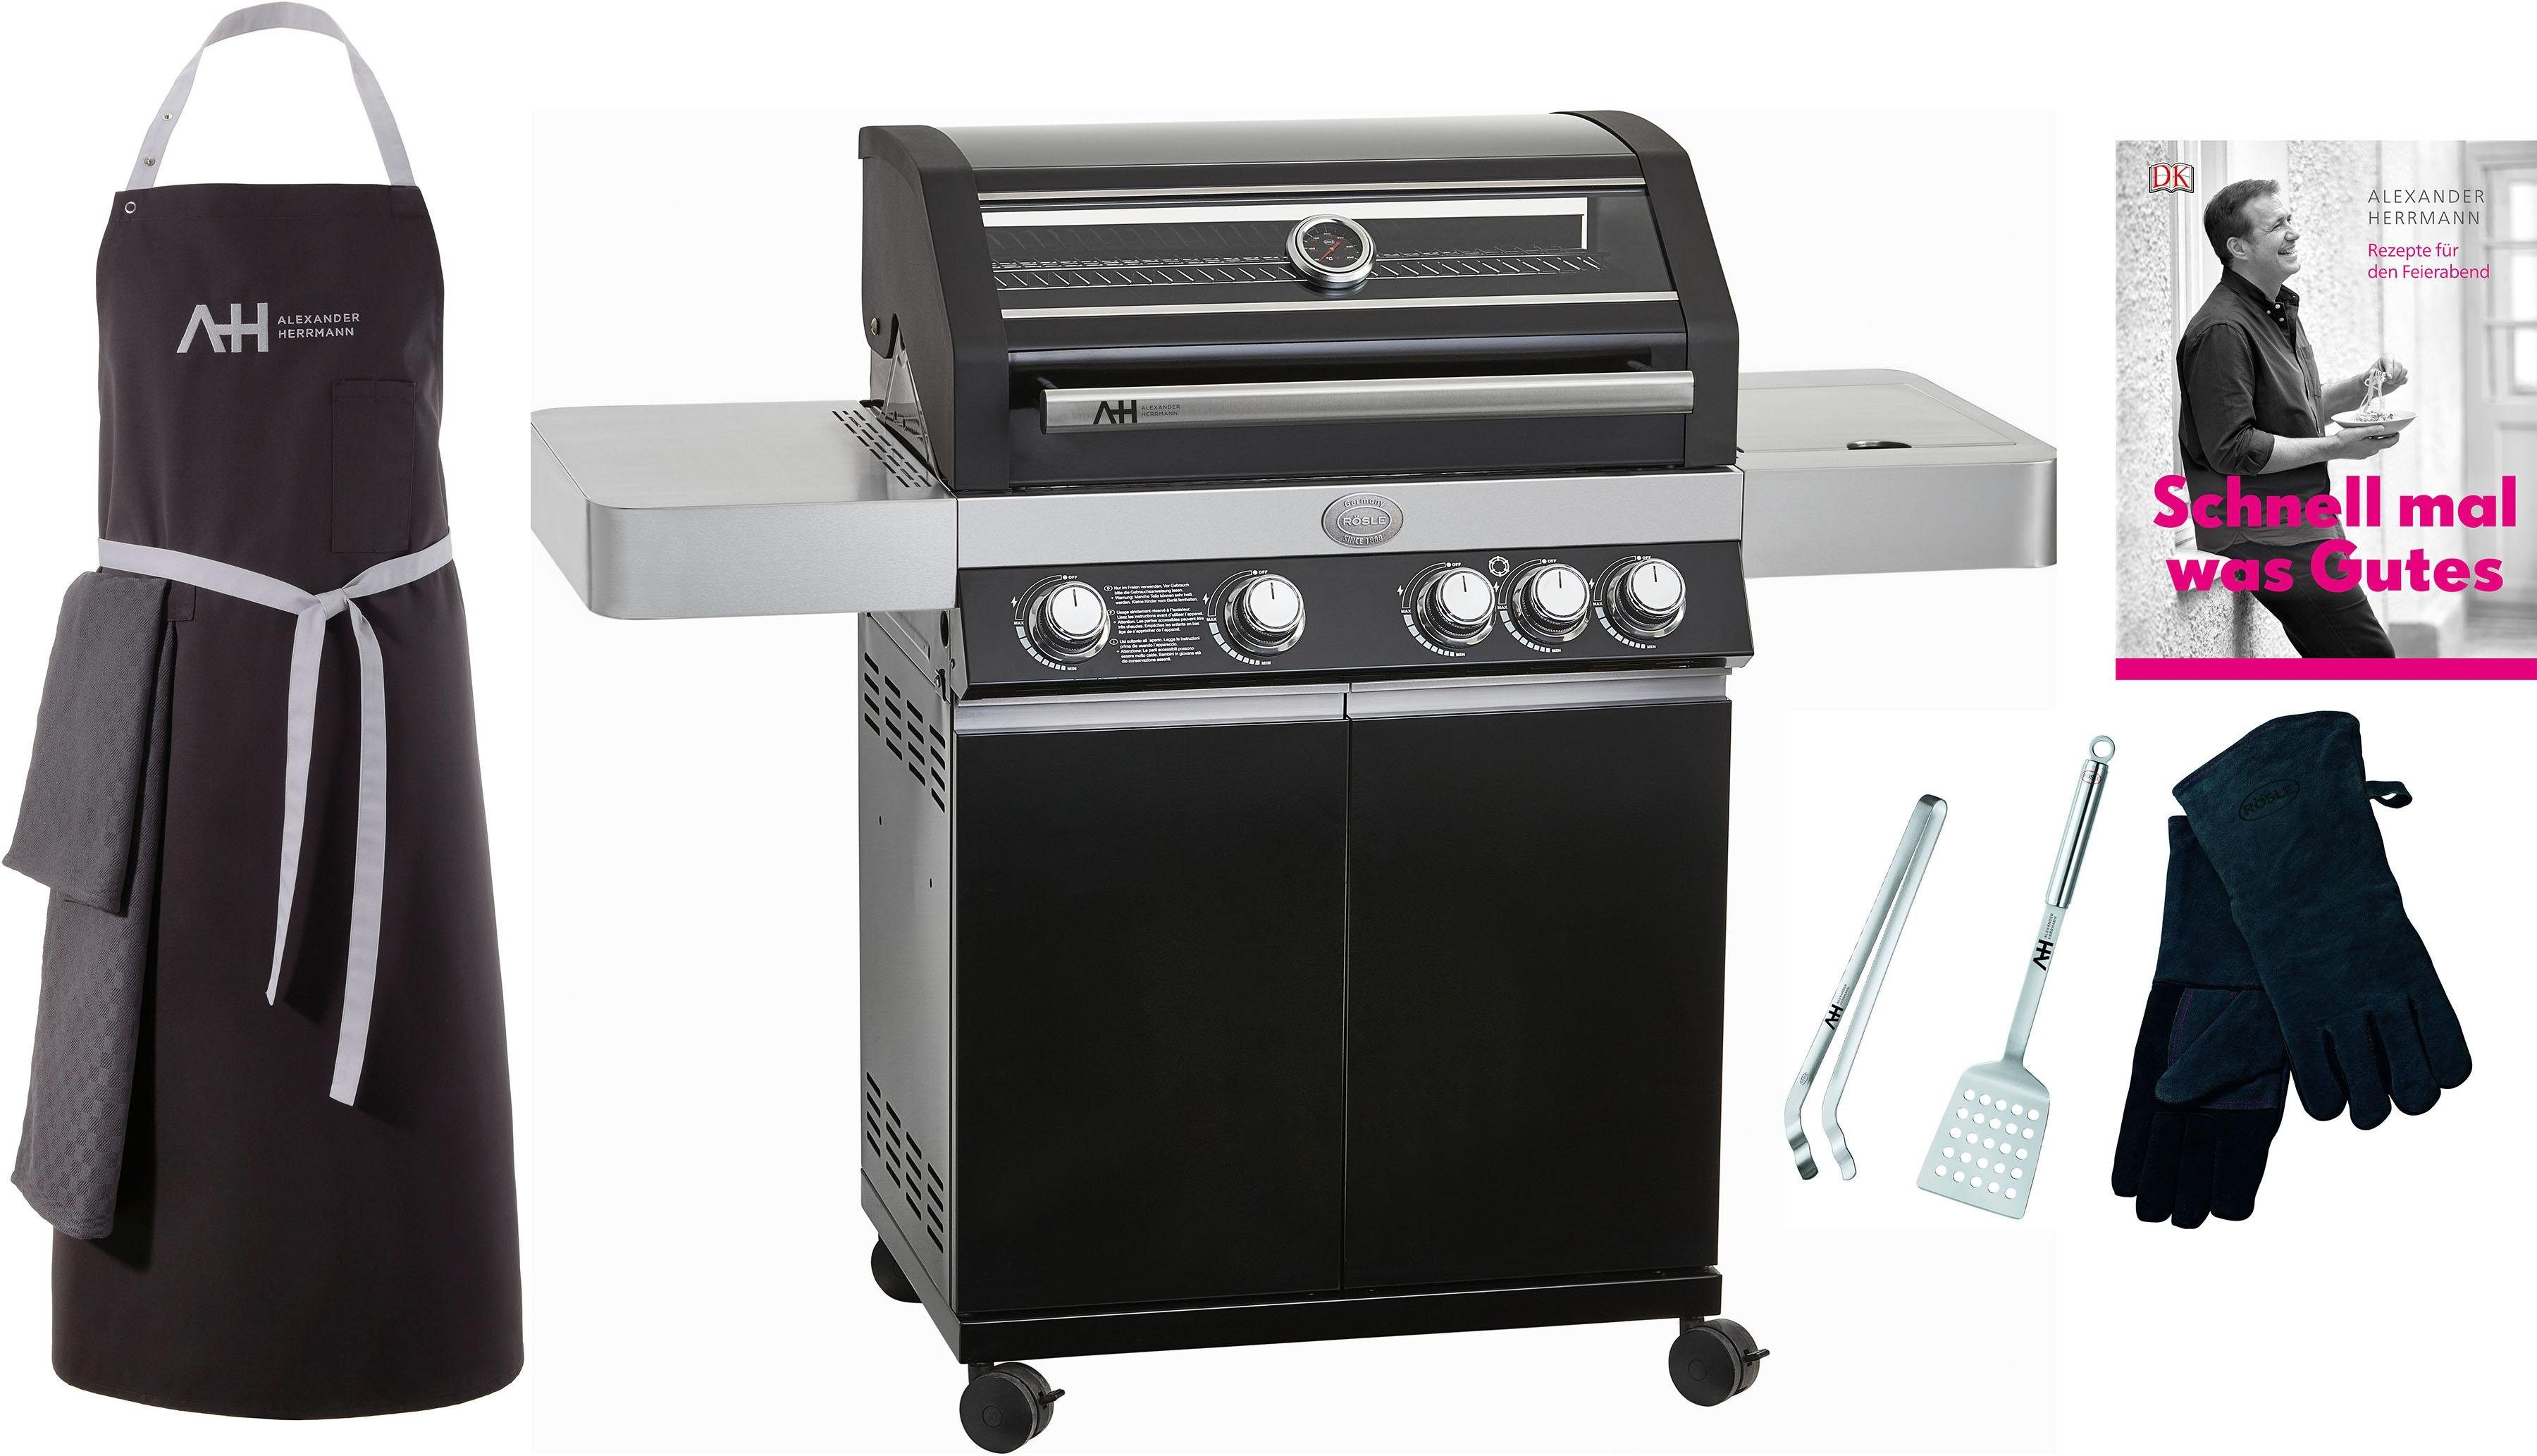 Enders Gasgrill Kansas 4 Sik Profi Turbo : Enders bbq gasgrill kansas sik profi turbo gas grill